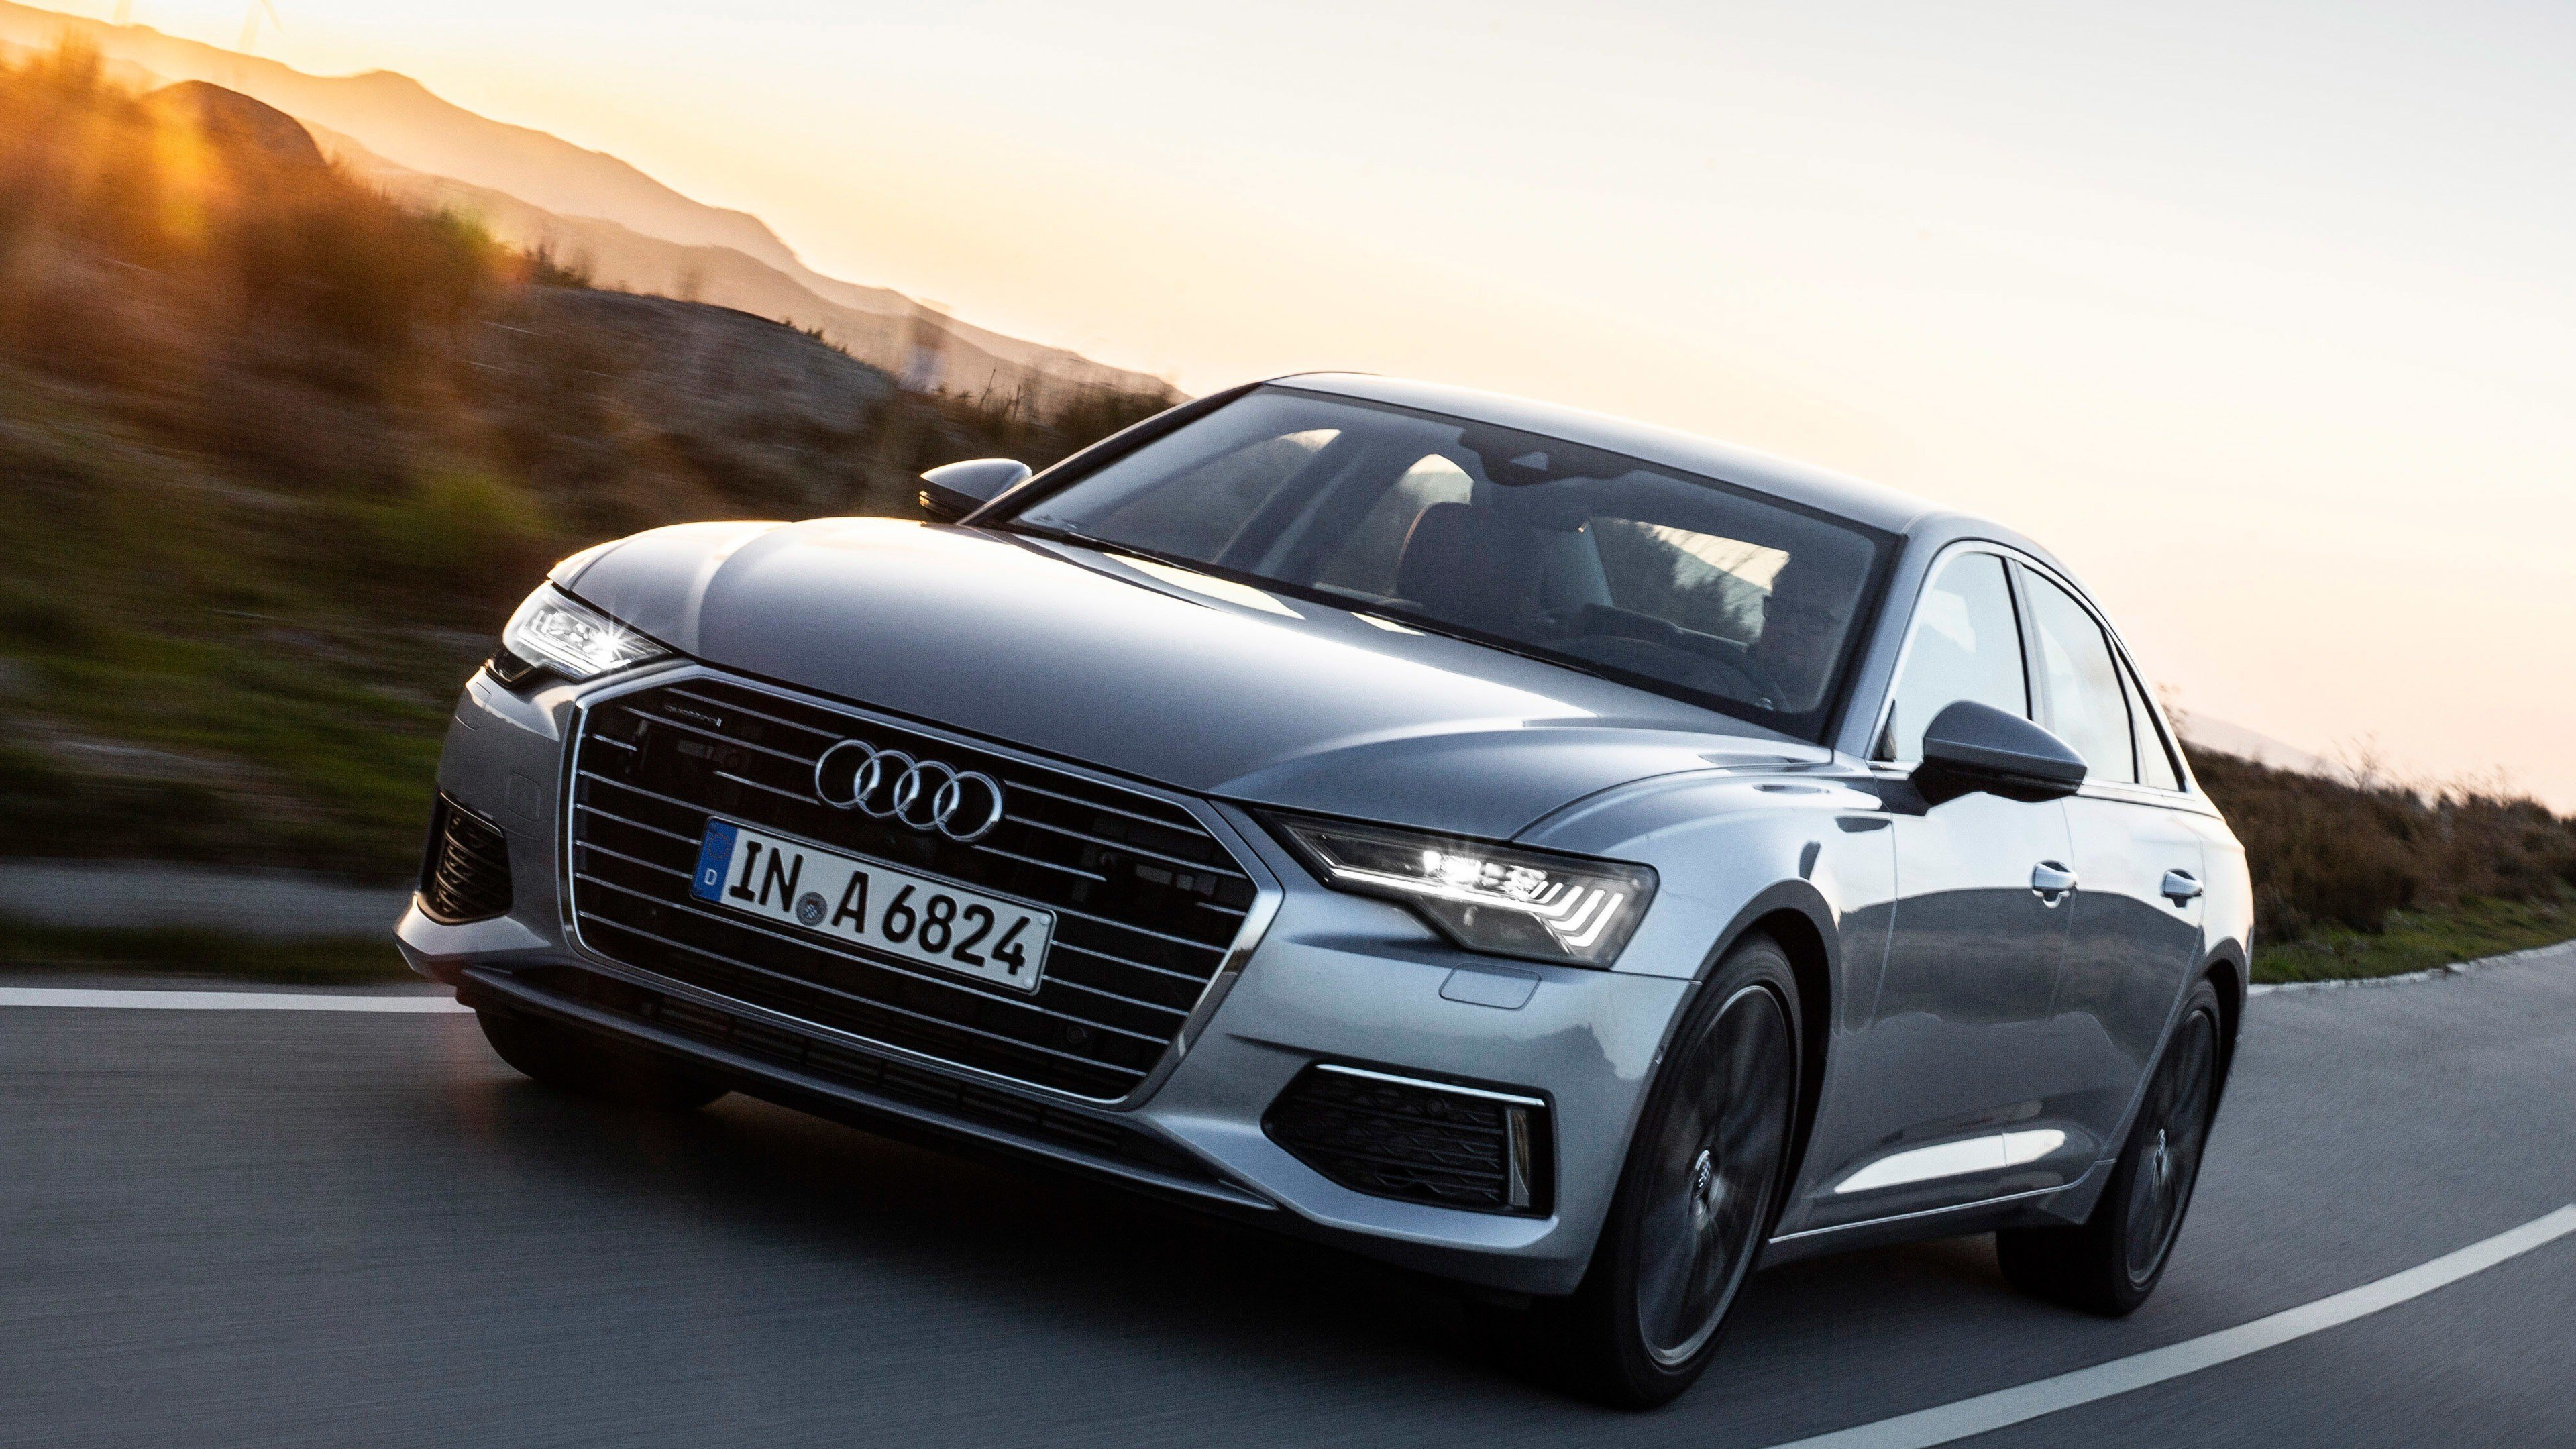 Latest Audi A6 4K Car Hd Wallpapers Free Download